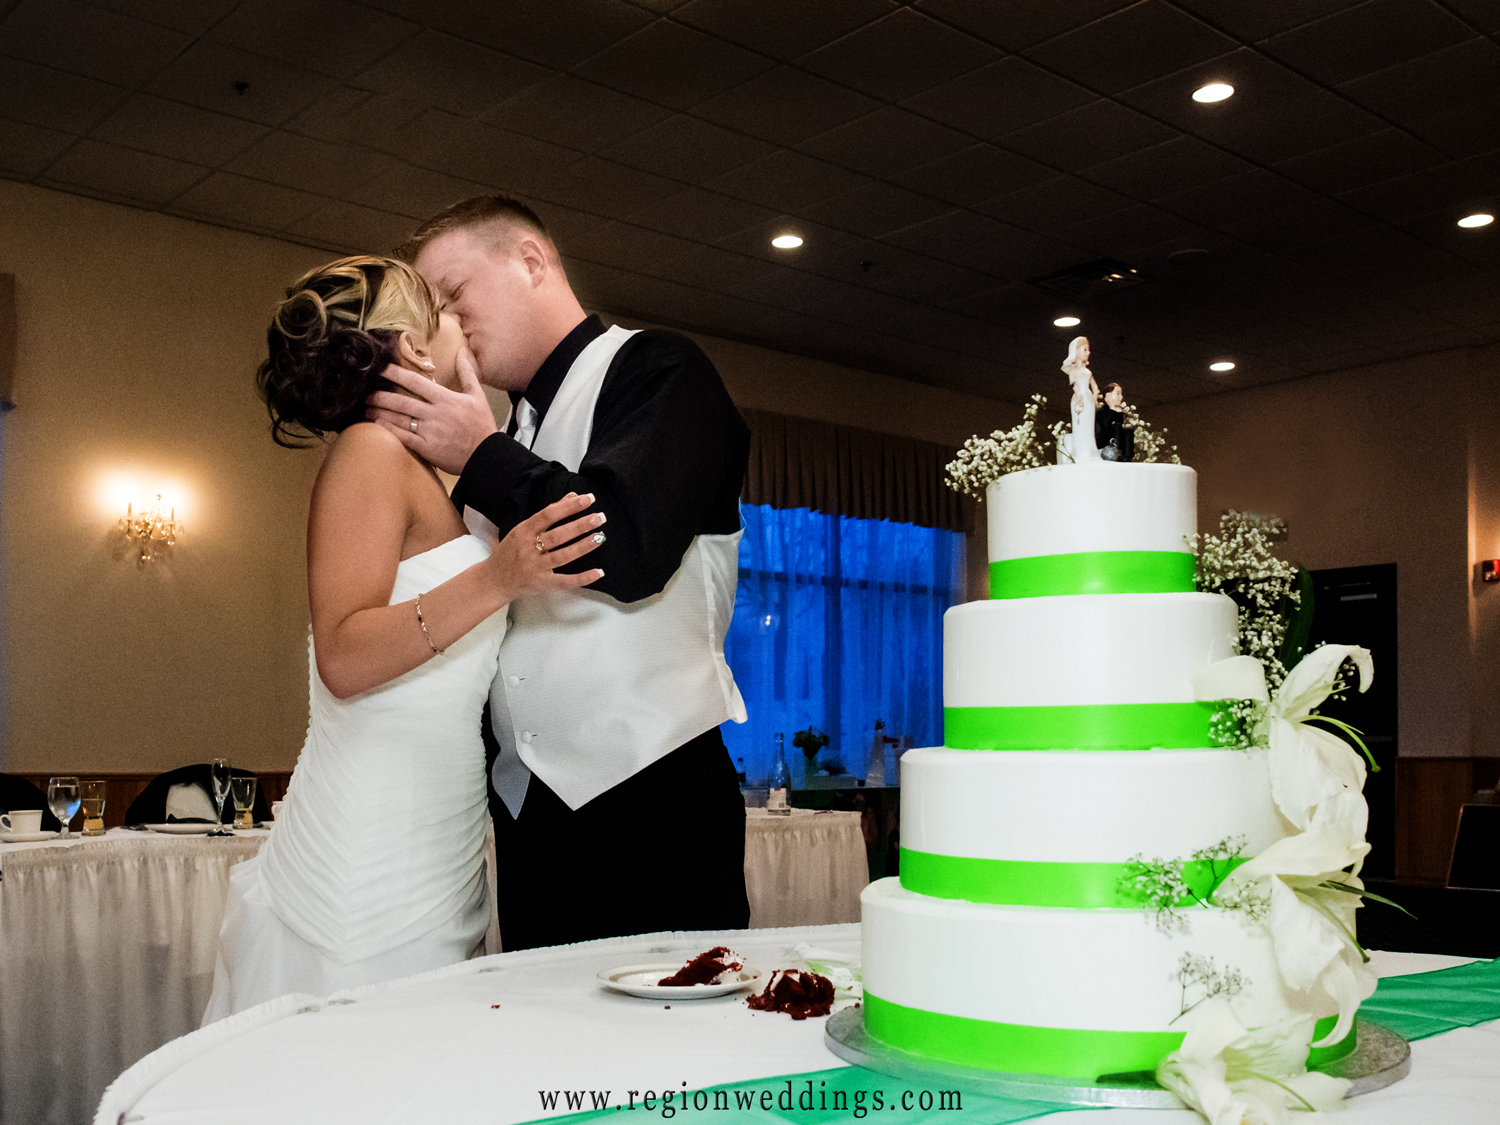 A kiss at the reception after cutting of the cake.